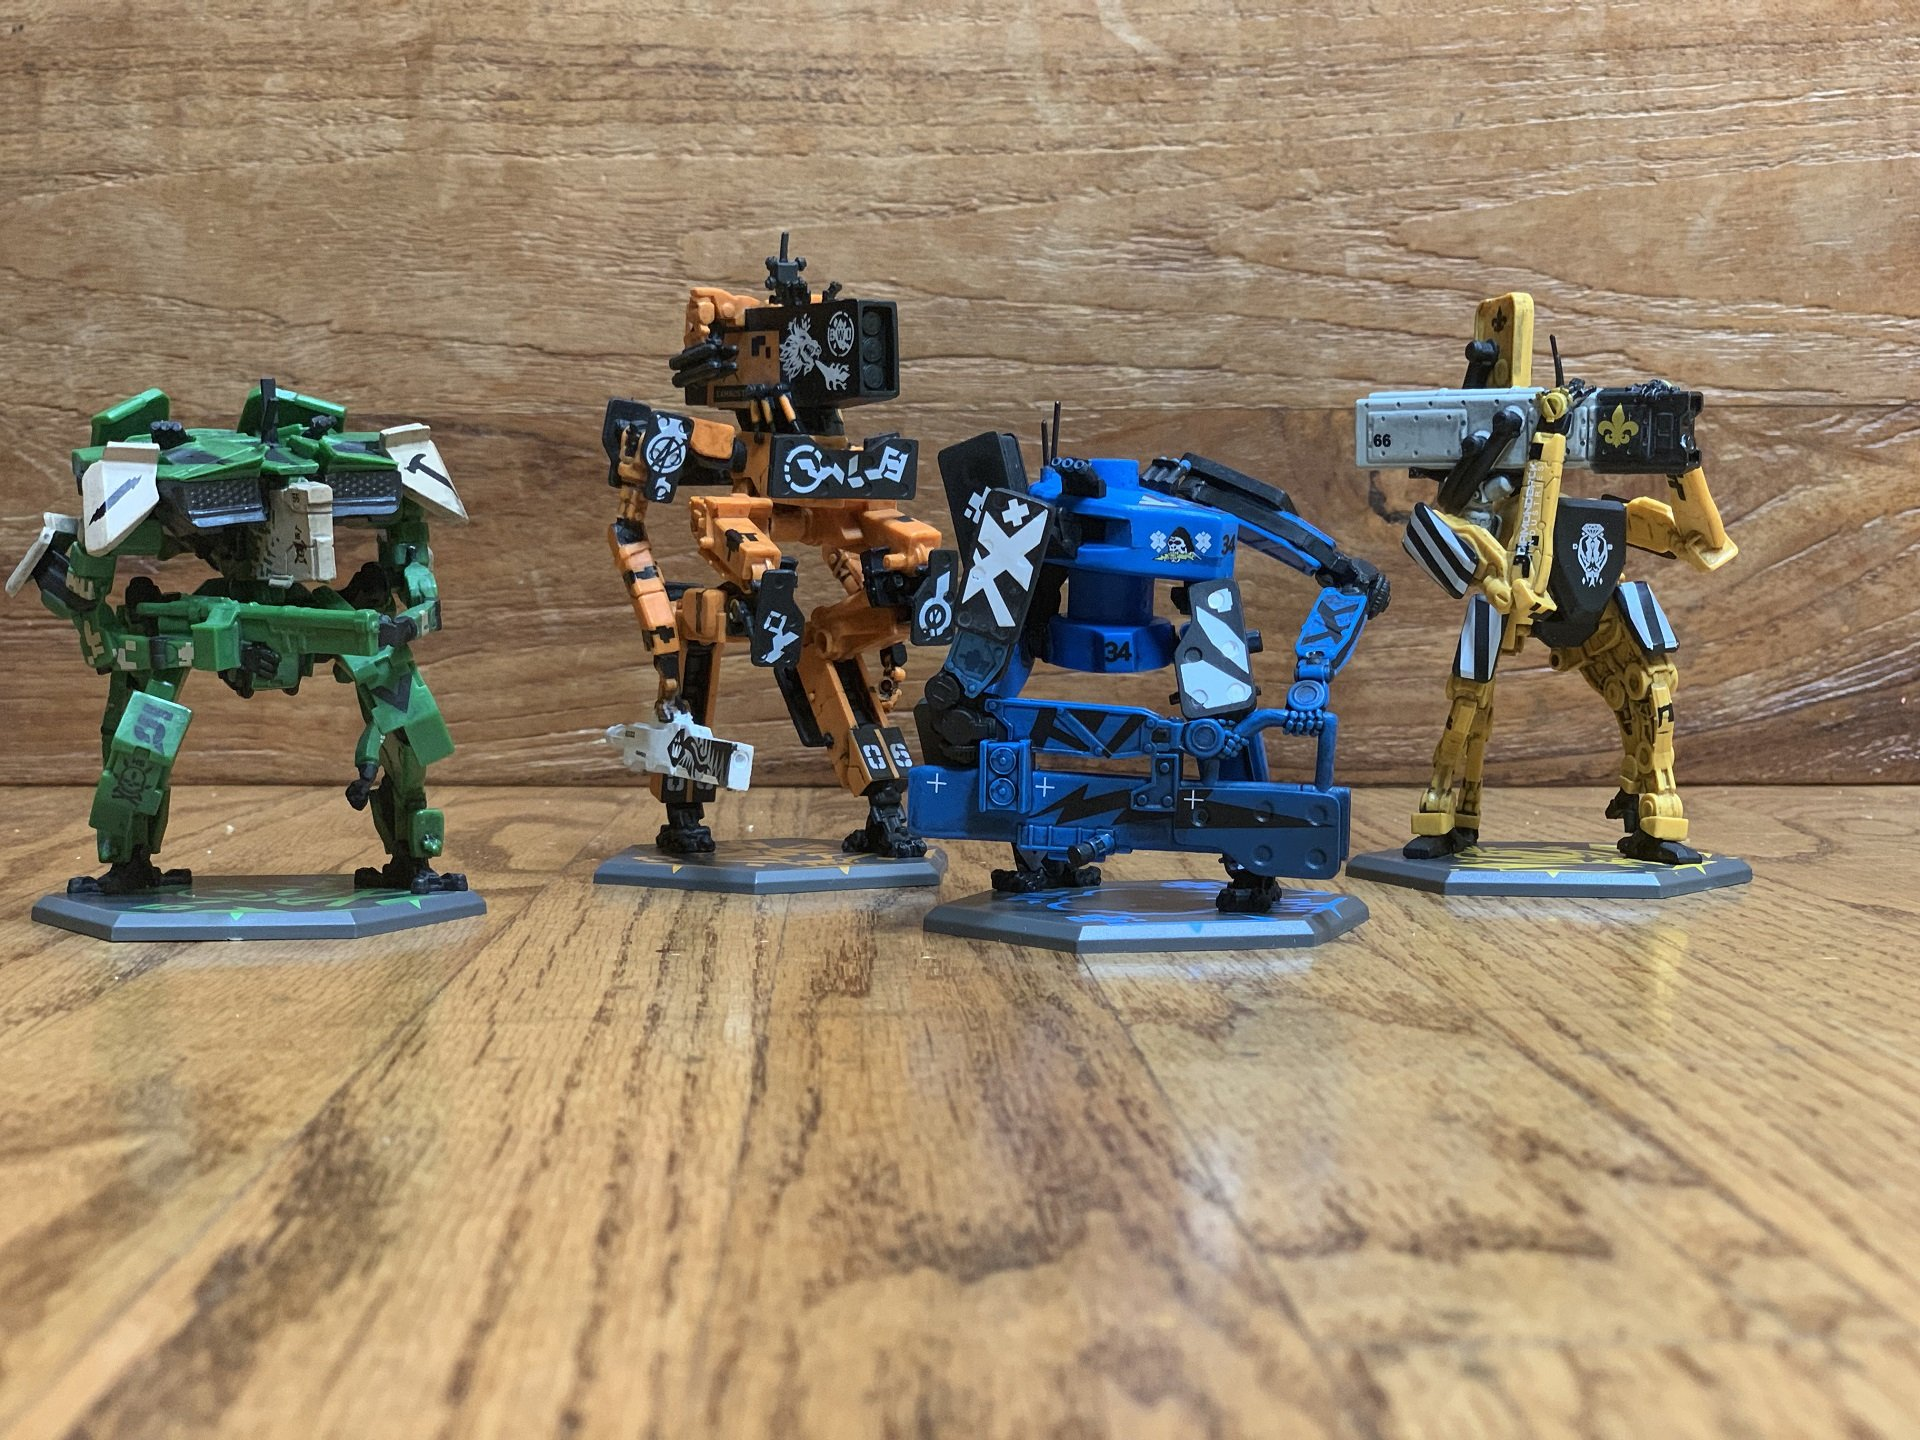 These are your four main mechs, fully painted and ready to rumble.